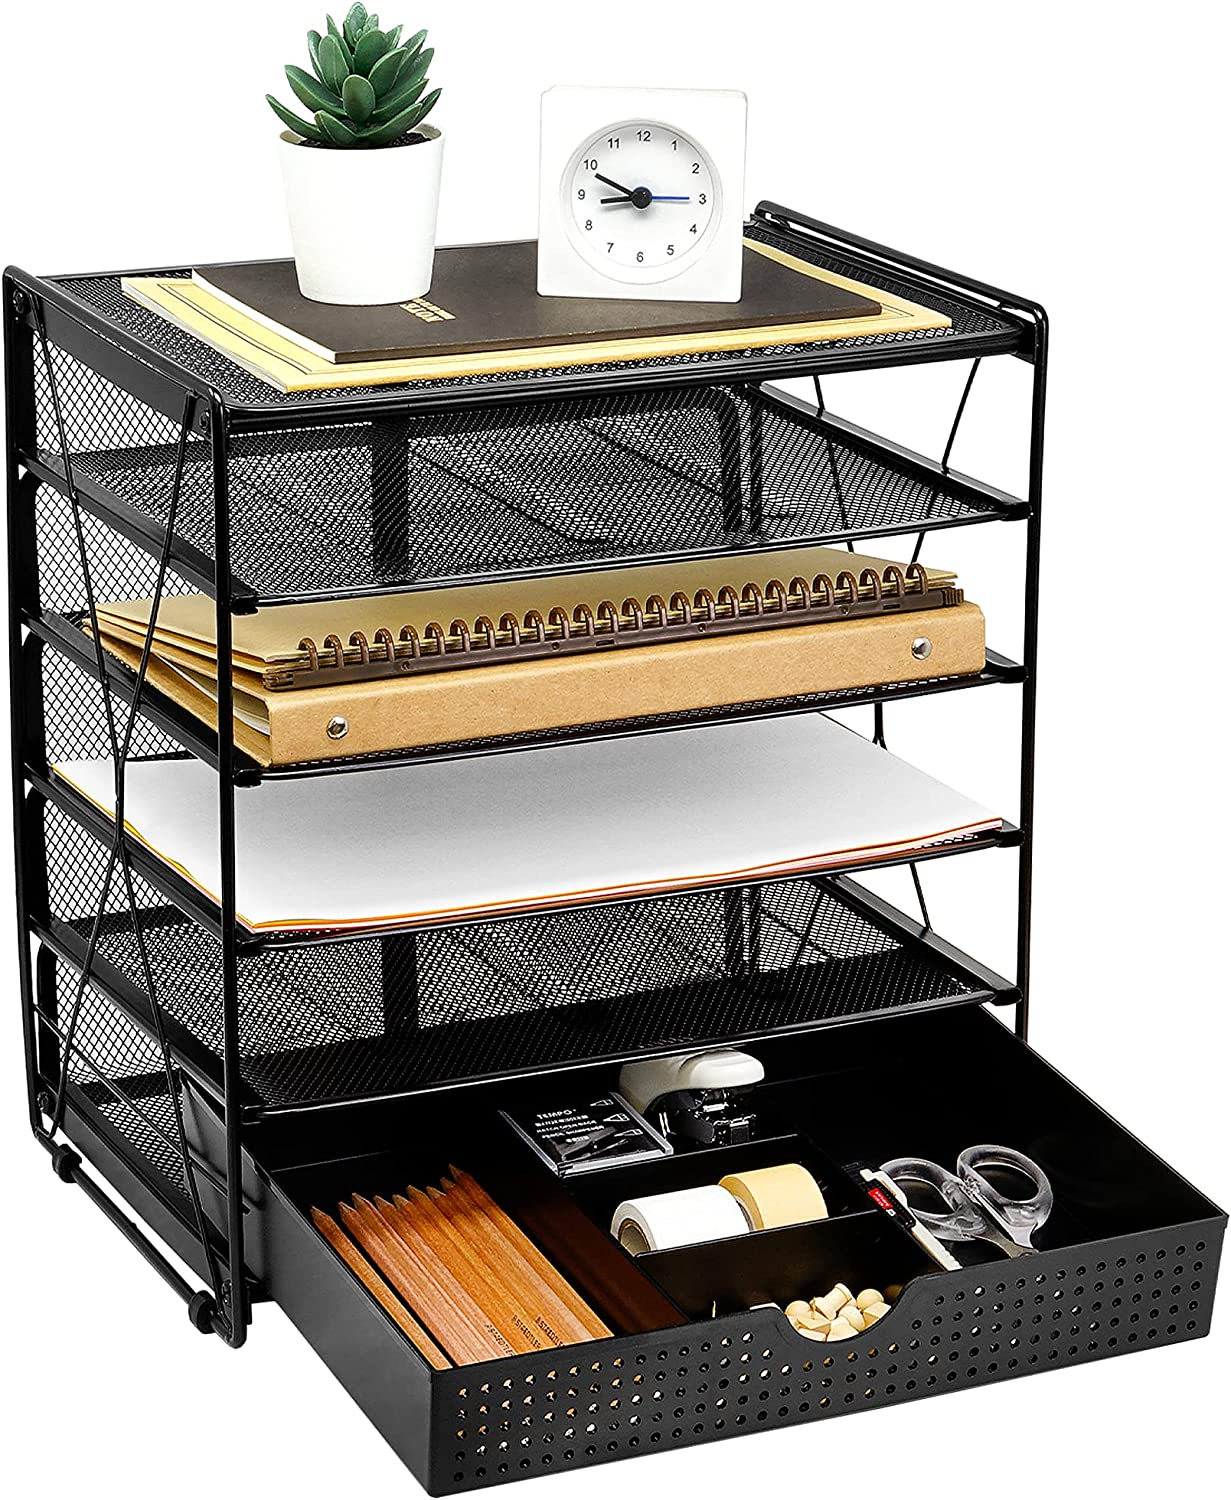 CAXXA 5 Tier Tampa Mall A surprise price is realized Mesh Letter Tray Pape Desk File Organizer Desktop